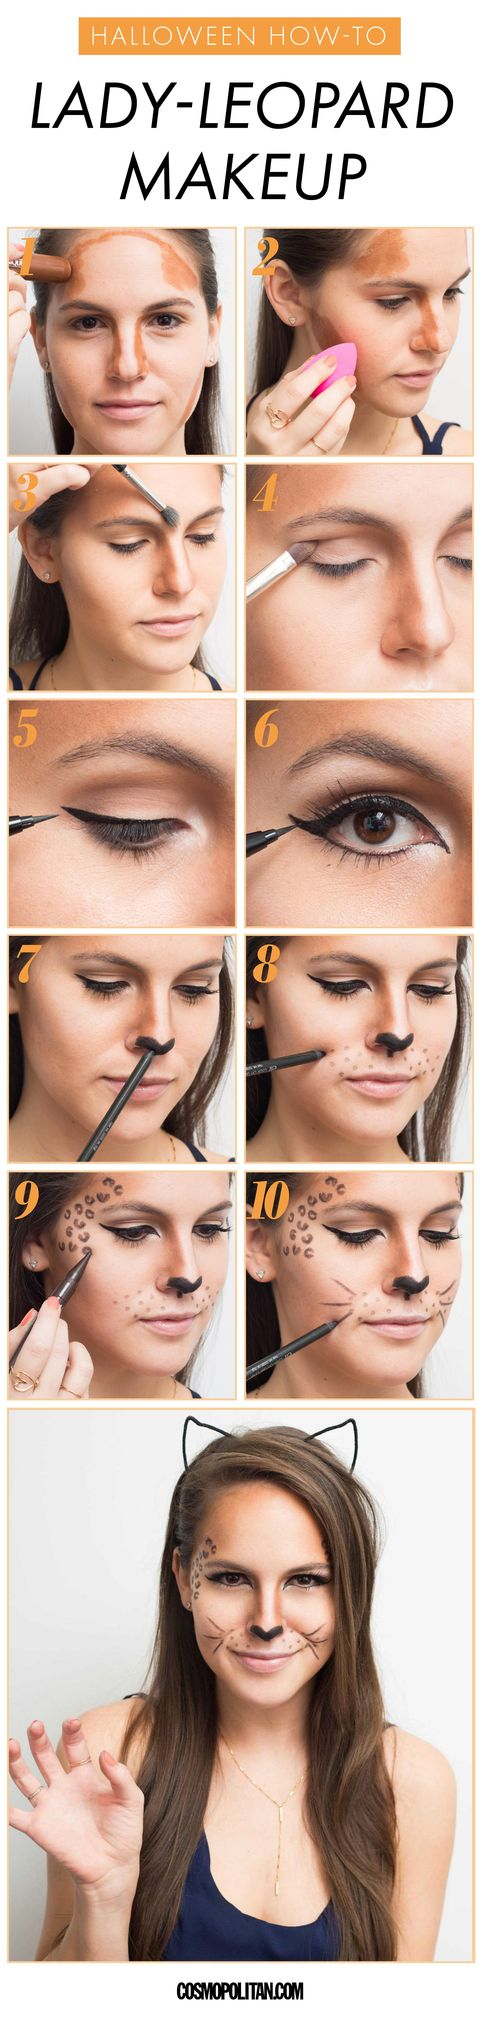 Halloween Leopard Makeup Tutorial Cheetah Costume Makeup